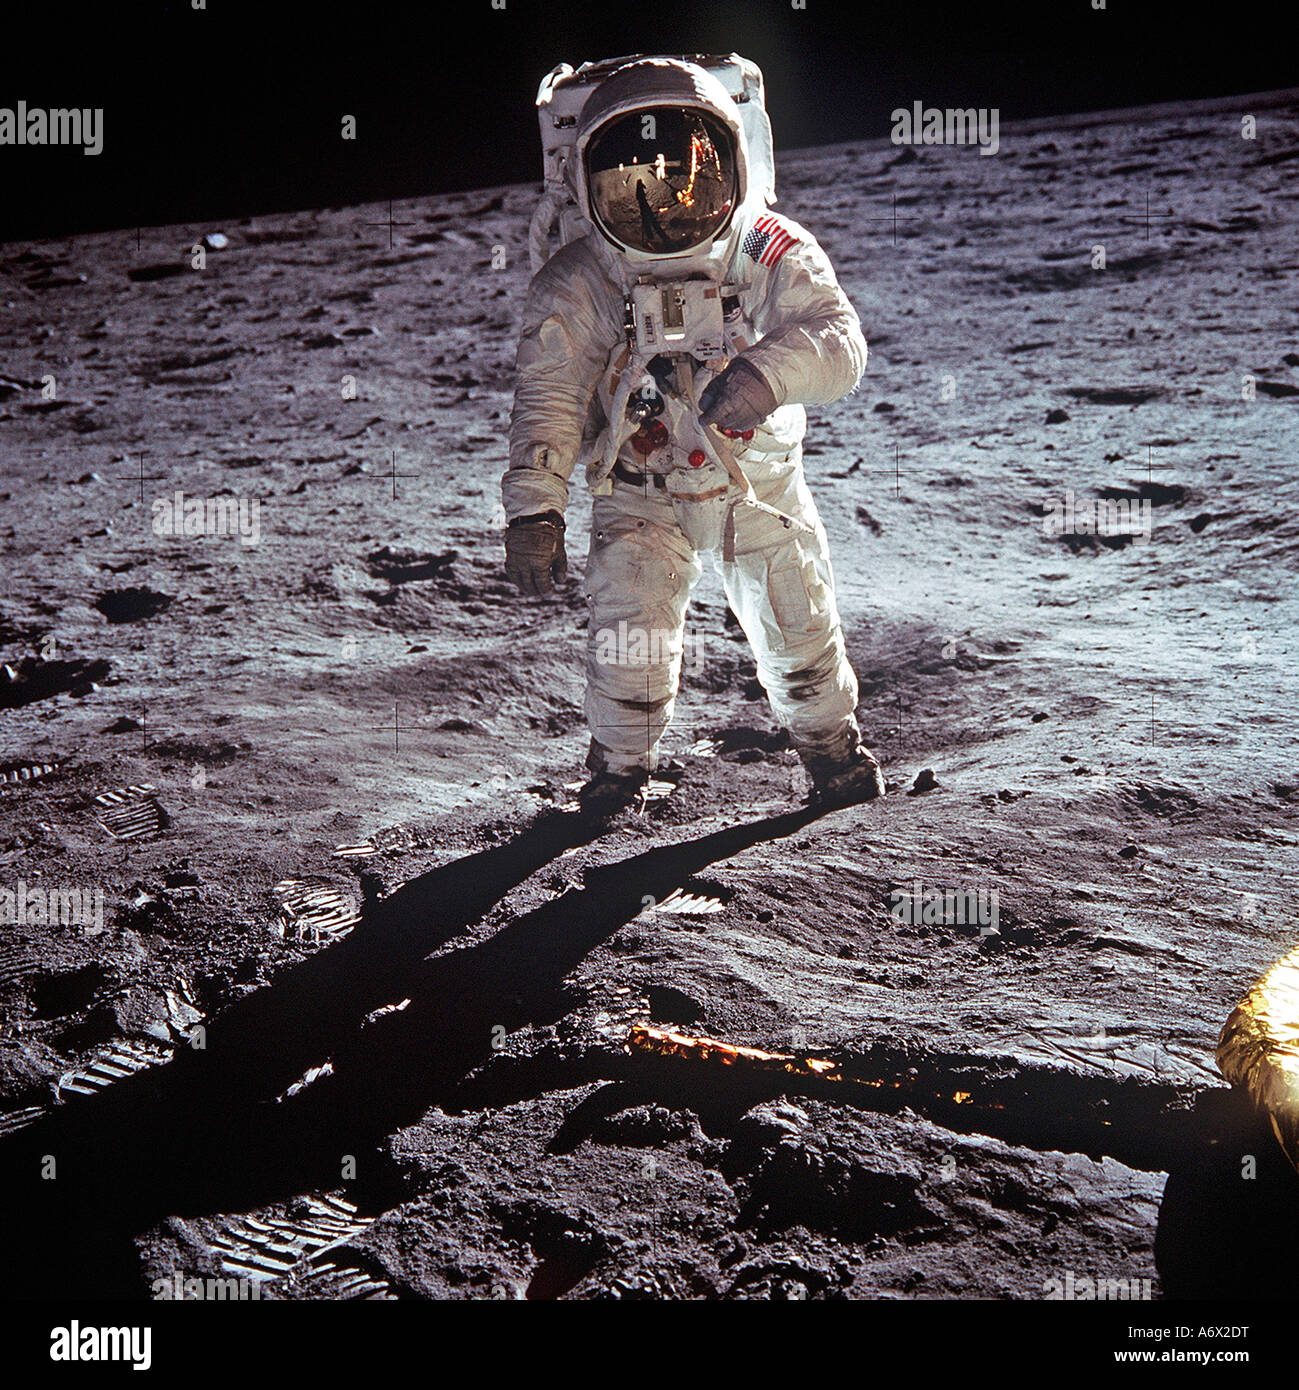 Astronaut Neil Armstrong photographed on moon  as mission commander for the Apollo 11 moon landing on 20 July 1969 Stock Photo